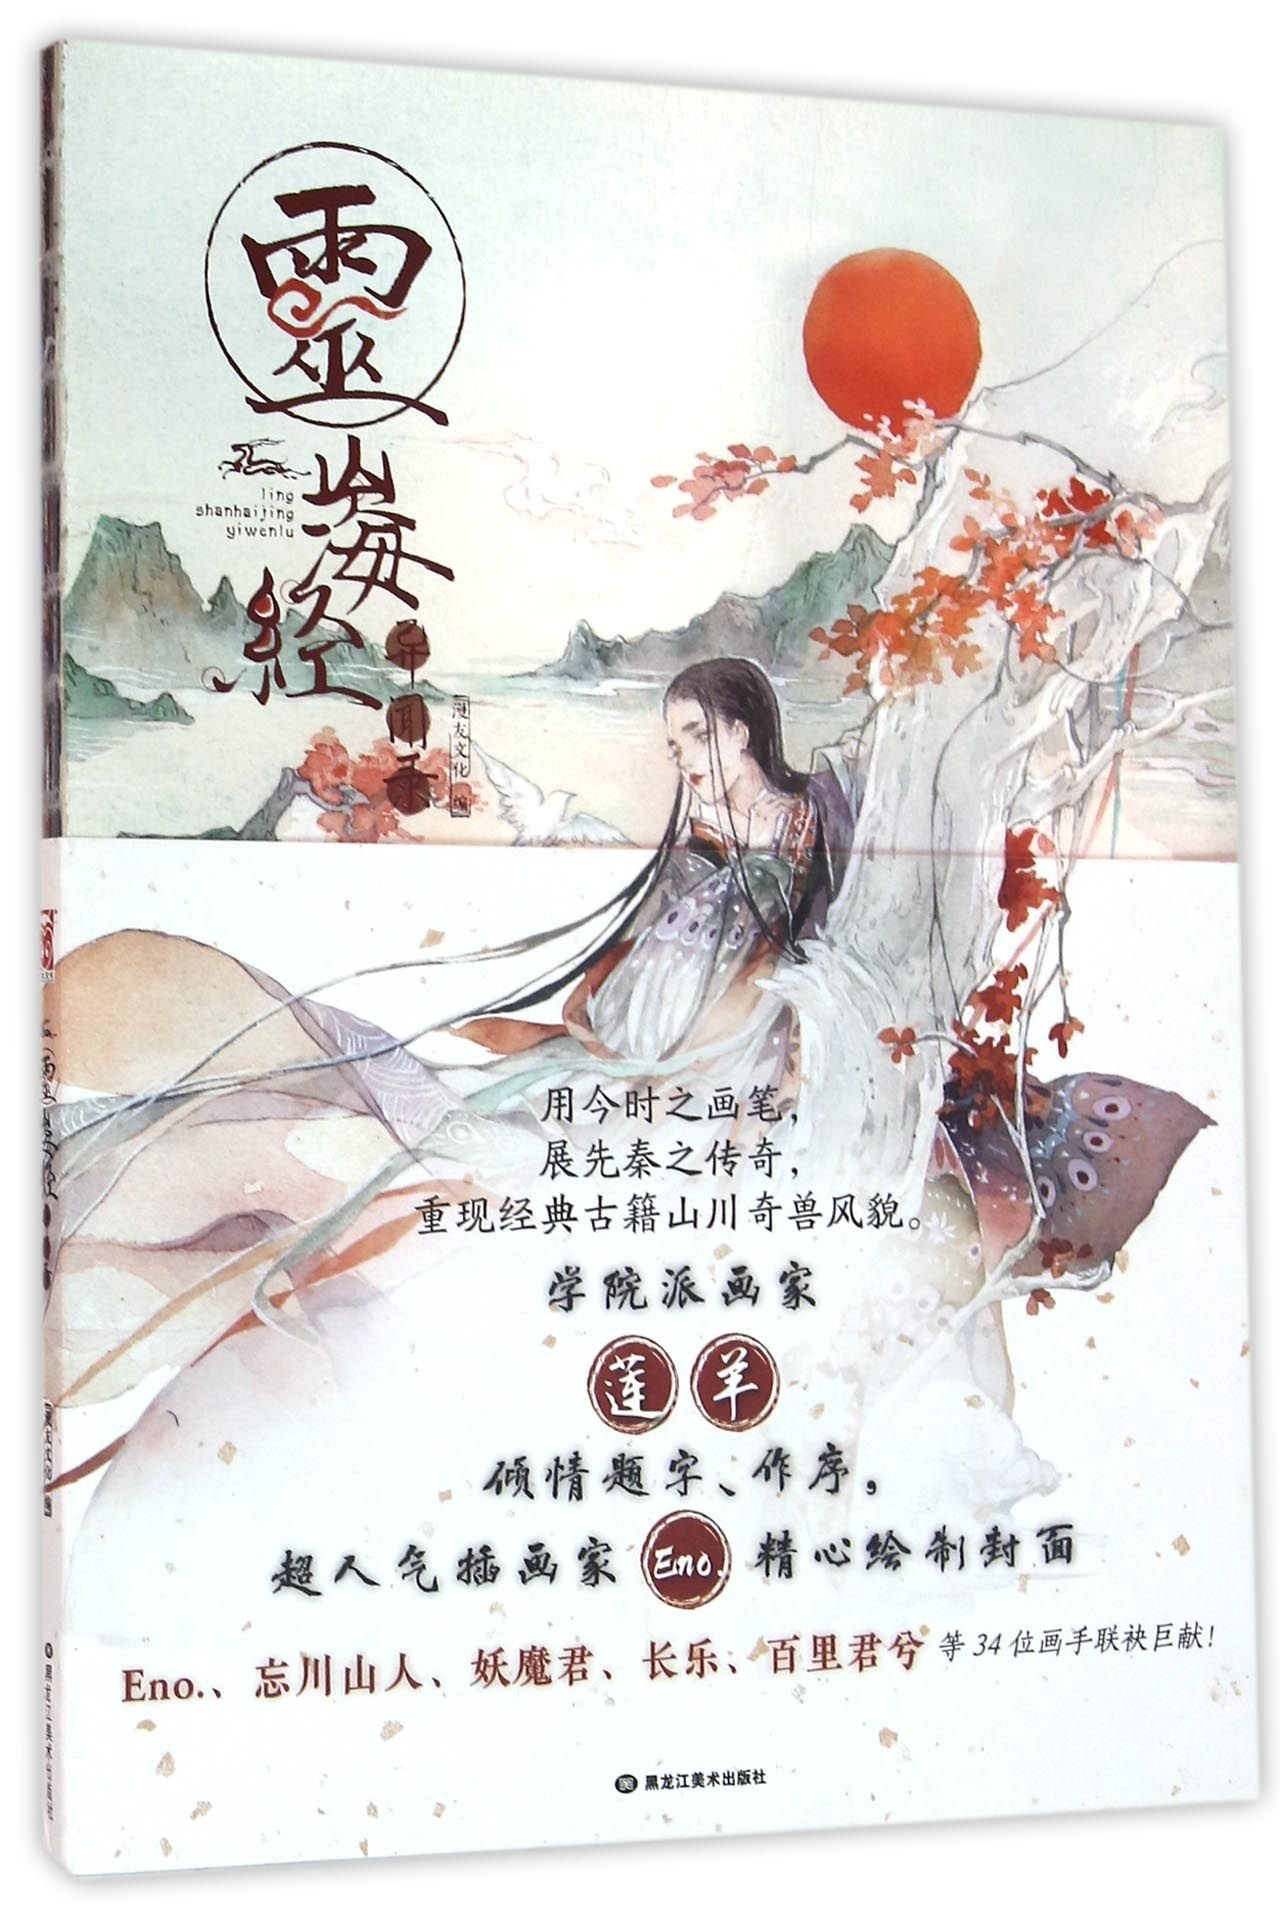 Download Spirits (Mysterious Stories Collected In Classic Of Mountains And Seas) (Chinese Edition) pdf epub